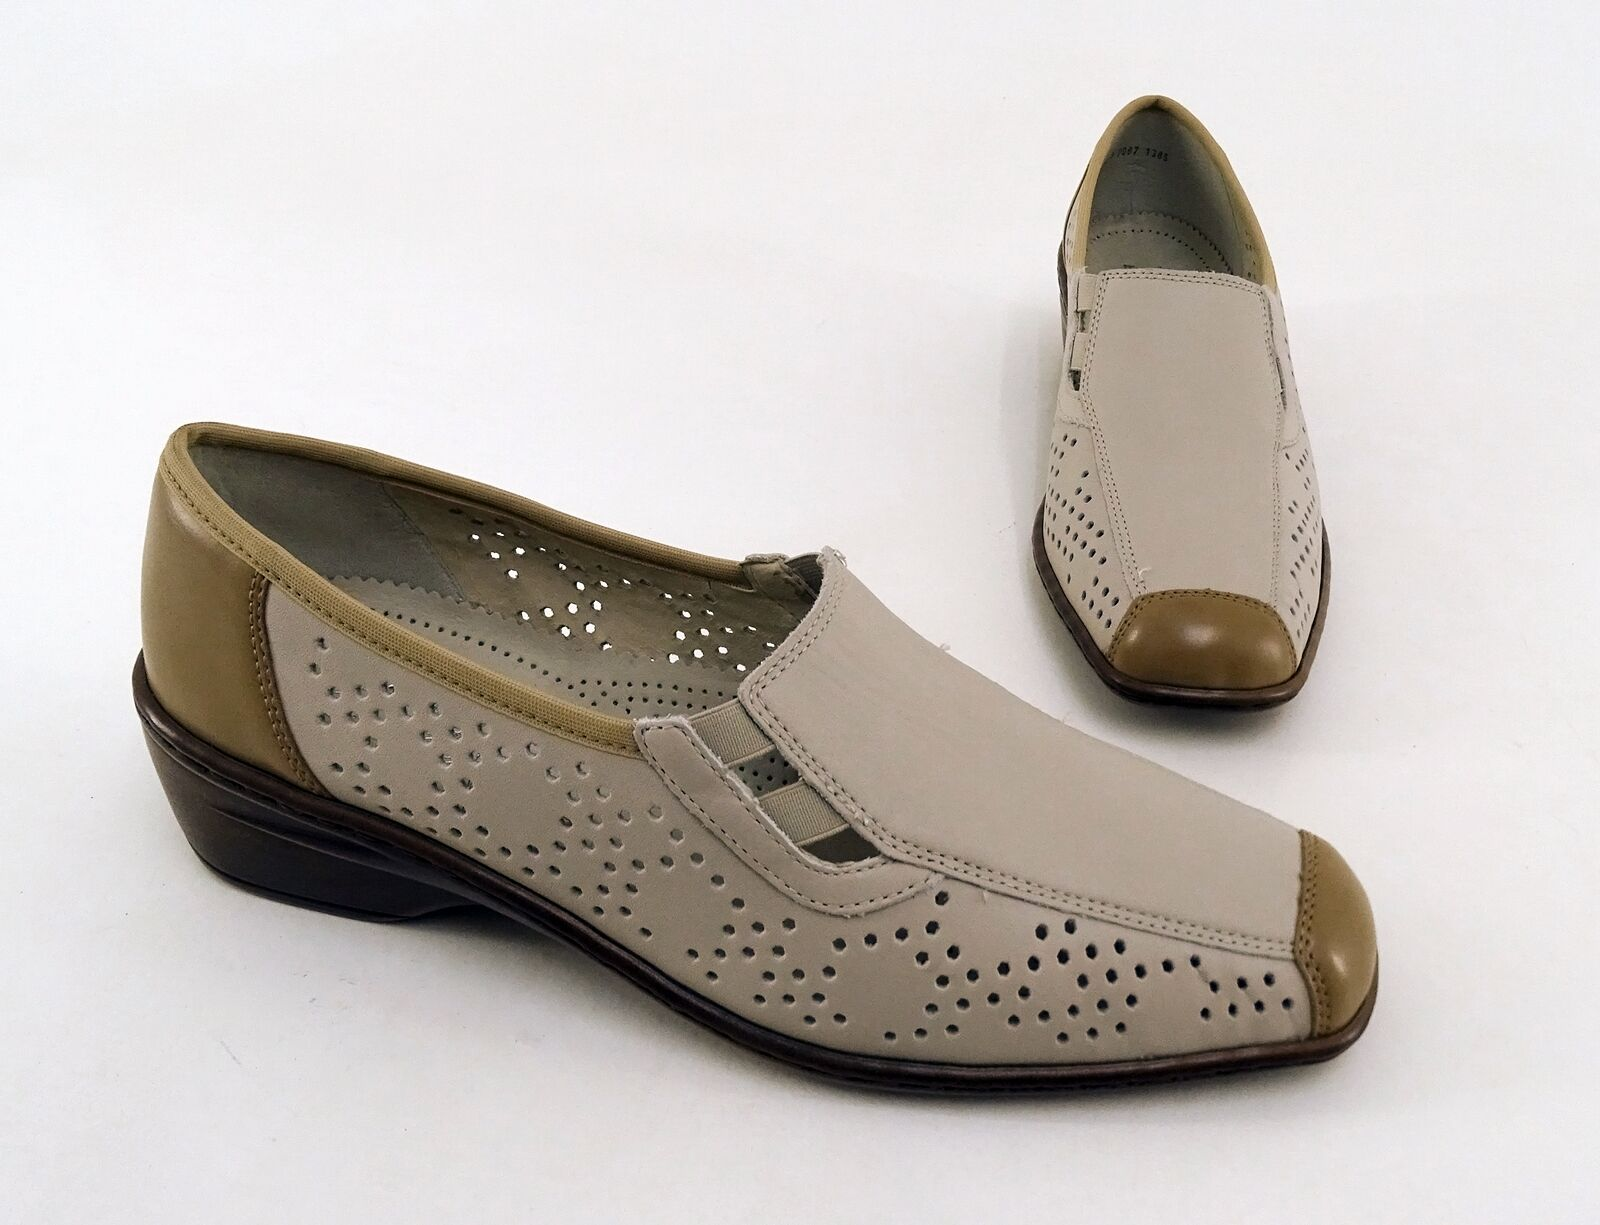 Slipper Jenny by Ara shoes Air Cushion Real Leather Beige Size 7,5 = 40,5 W  G